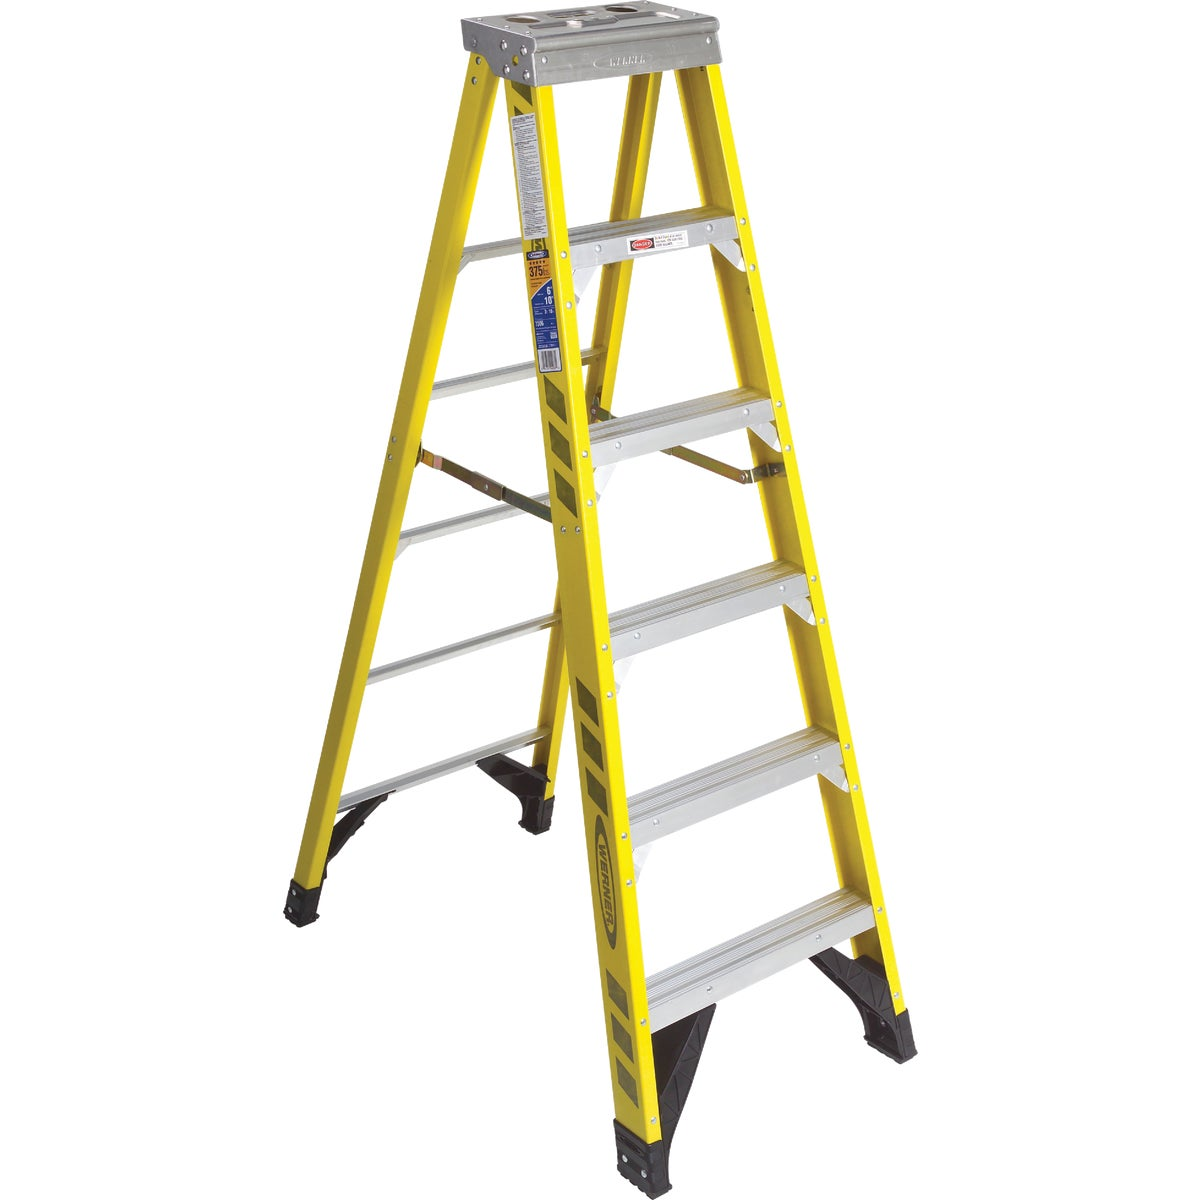 T-1AA 6' FBGL STEPLADDER - 7306 by Werner Ladder